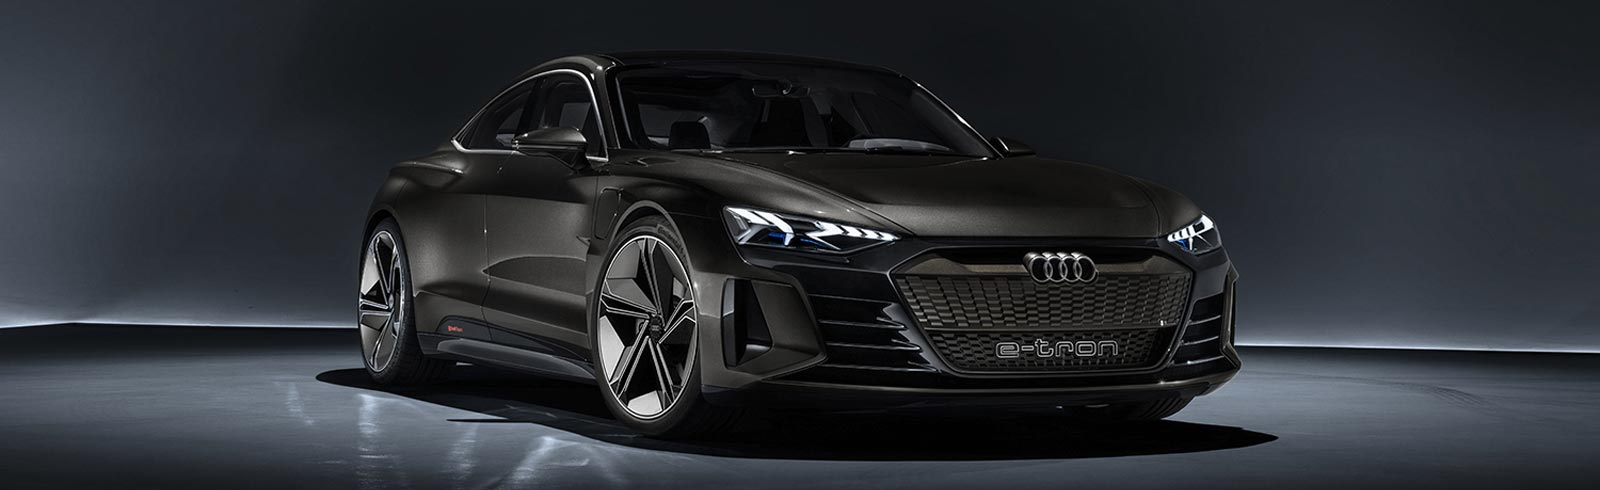 Audi might source out EV batteries from BYD